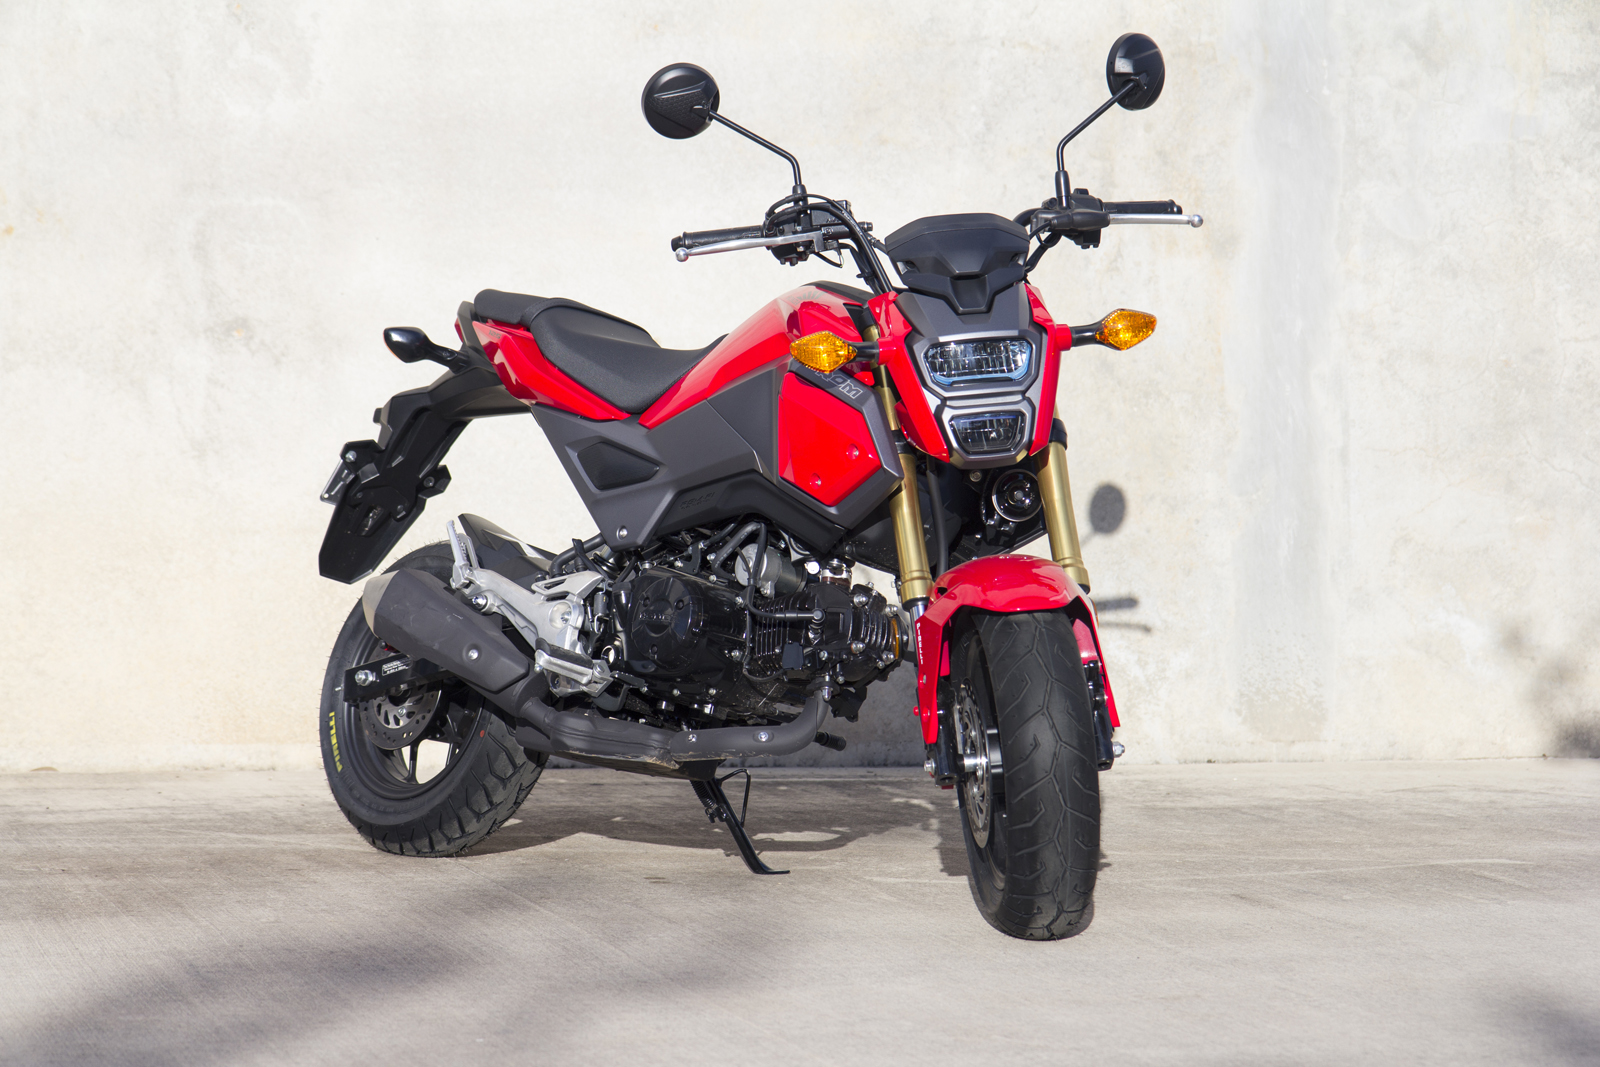 Honda Grom Review >> New Product: Pirelli Diablo Scooter Tyre for Honda Grom - Bike Review